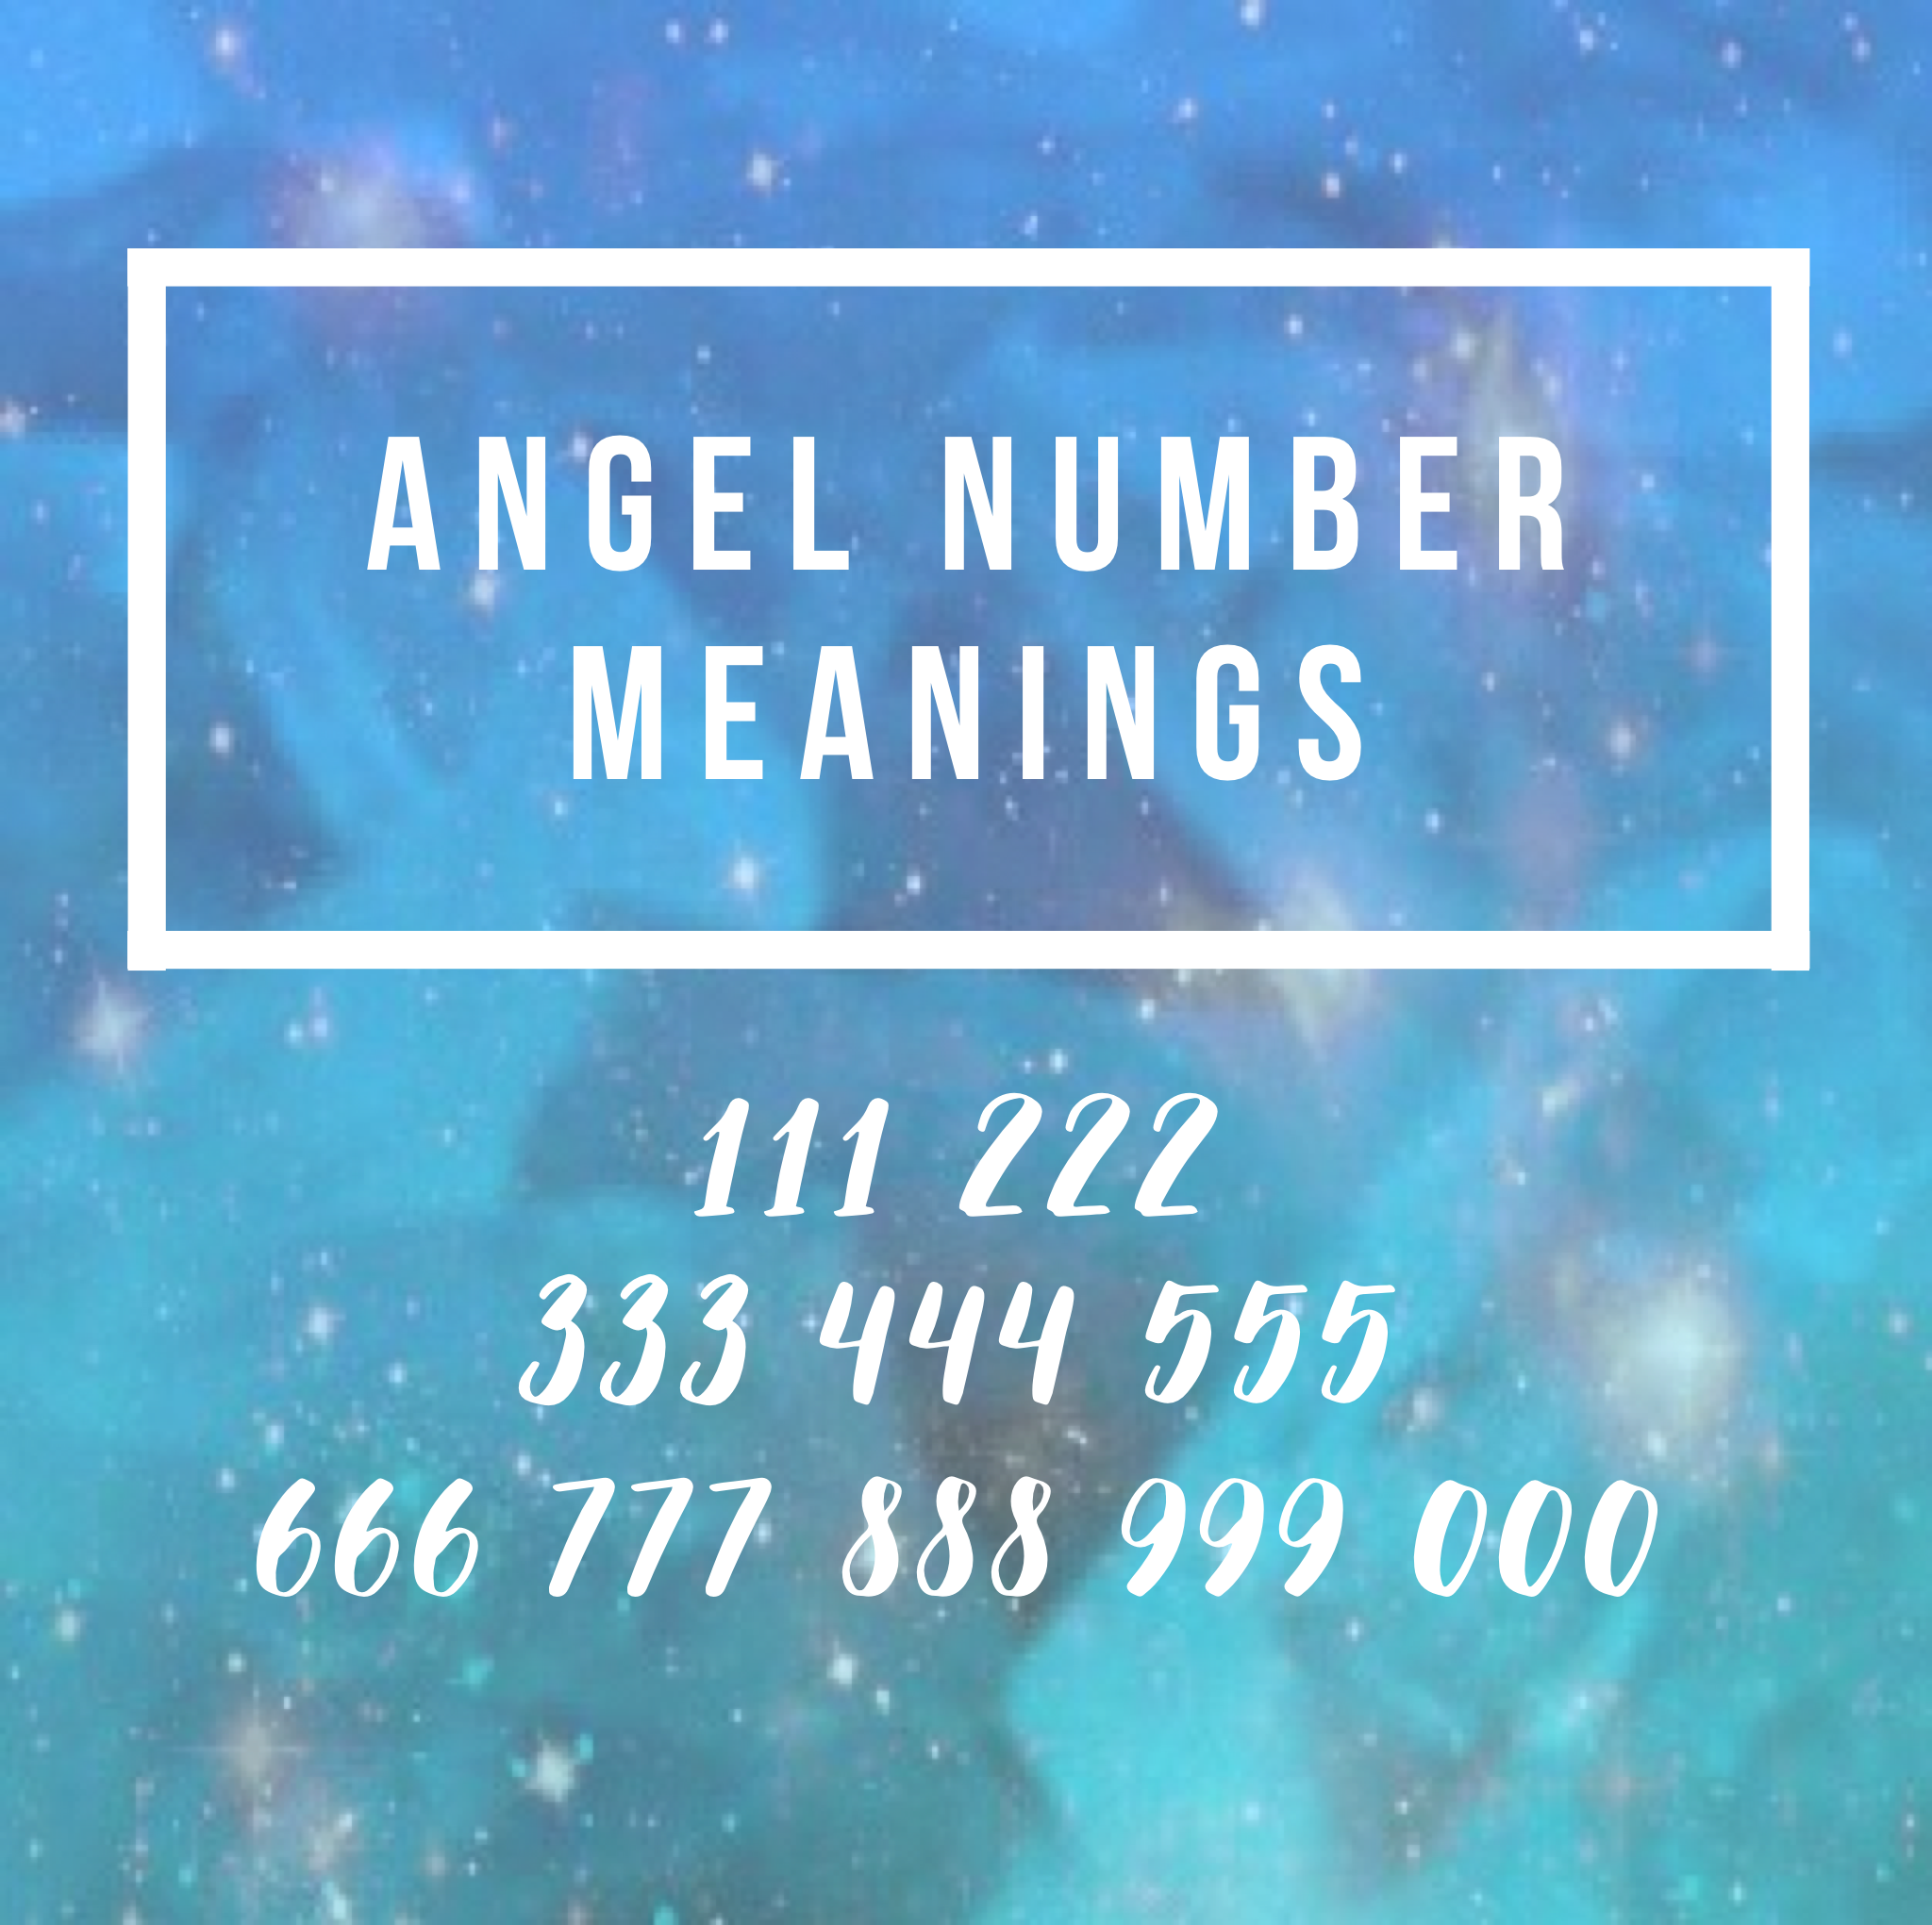 Seeing Repetitive Numbers The Meaning Of Angel Numbers Viola Hug